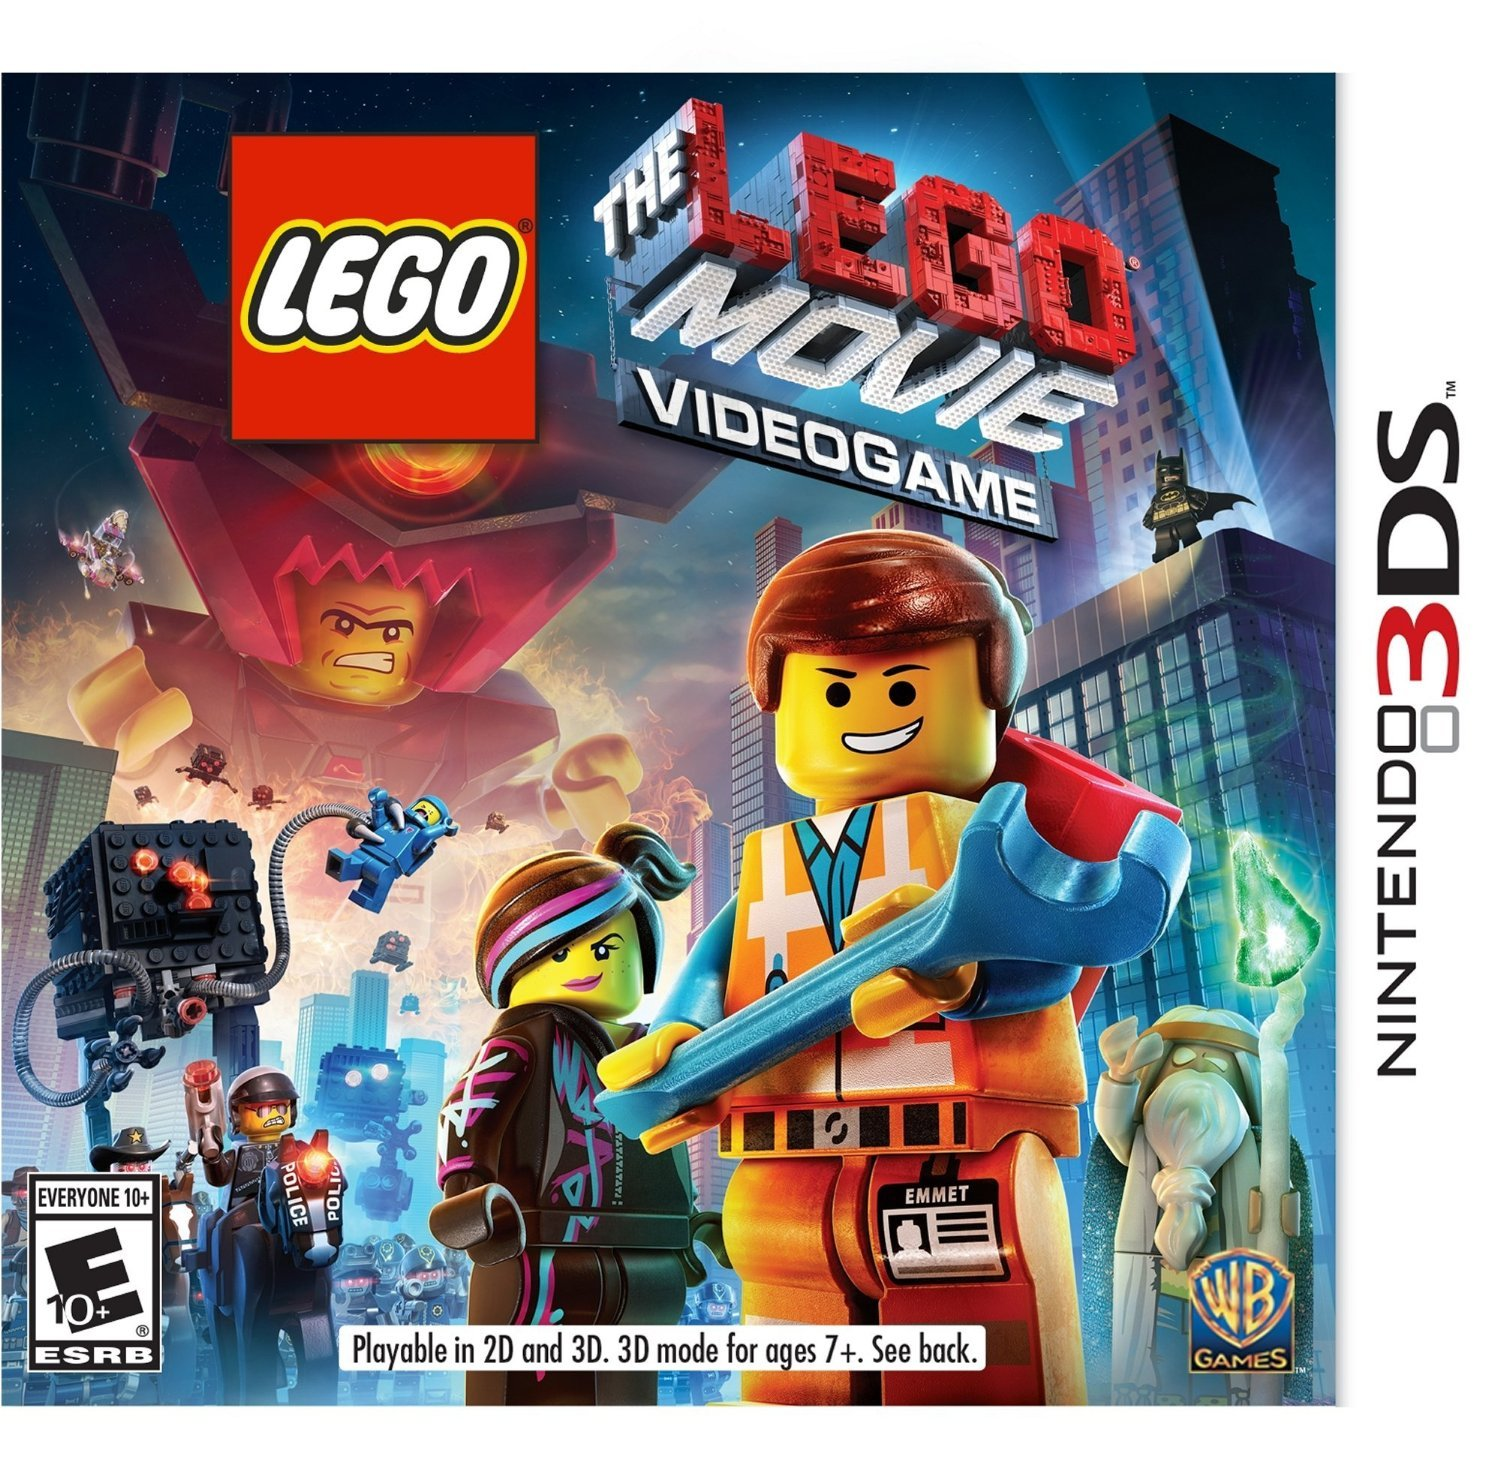 The LEGO Movie Videogame 3DS Physical Game Cartridge US